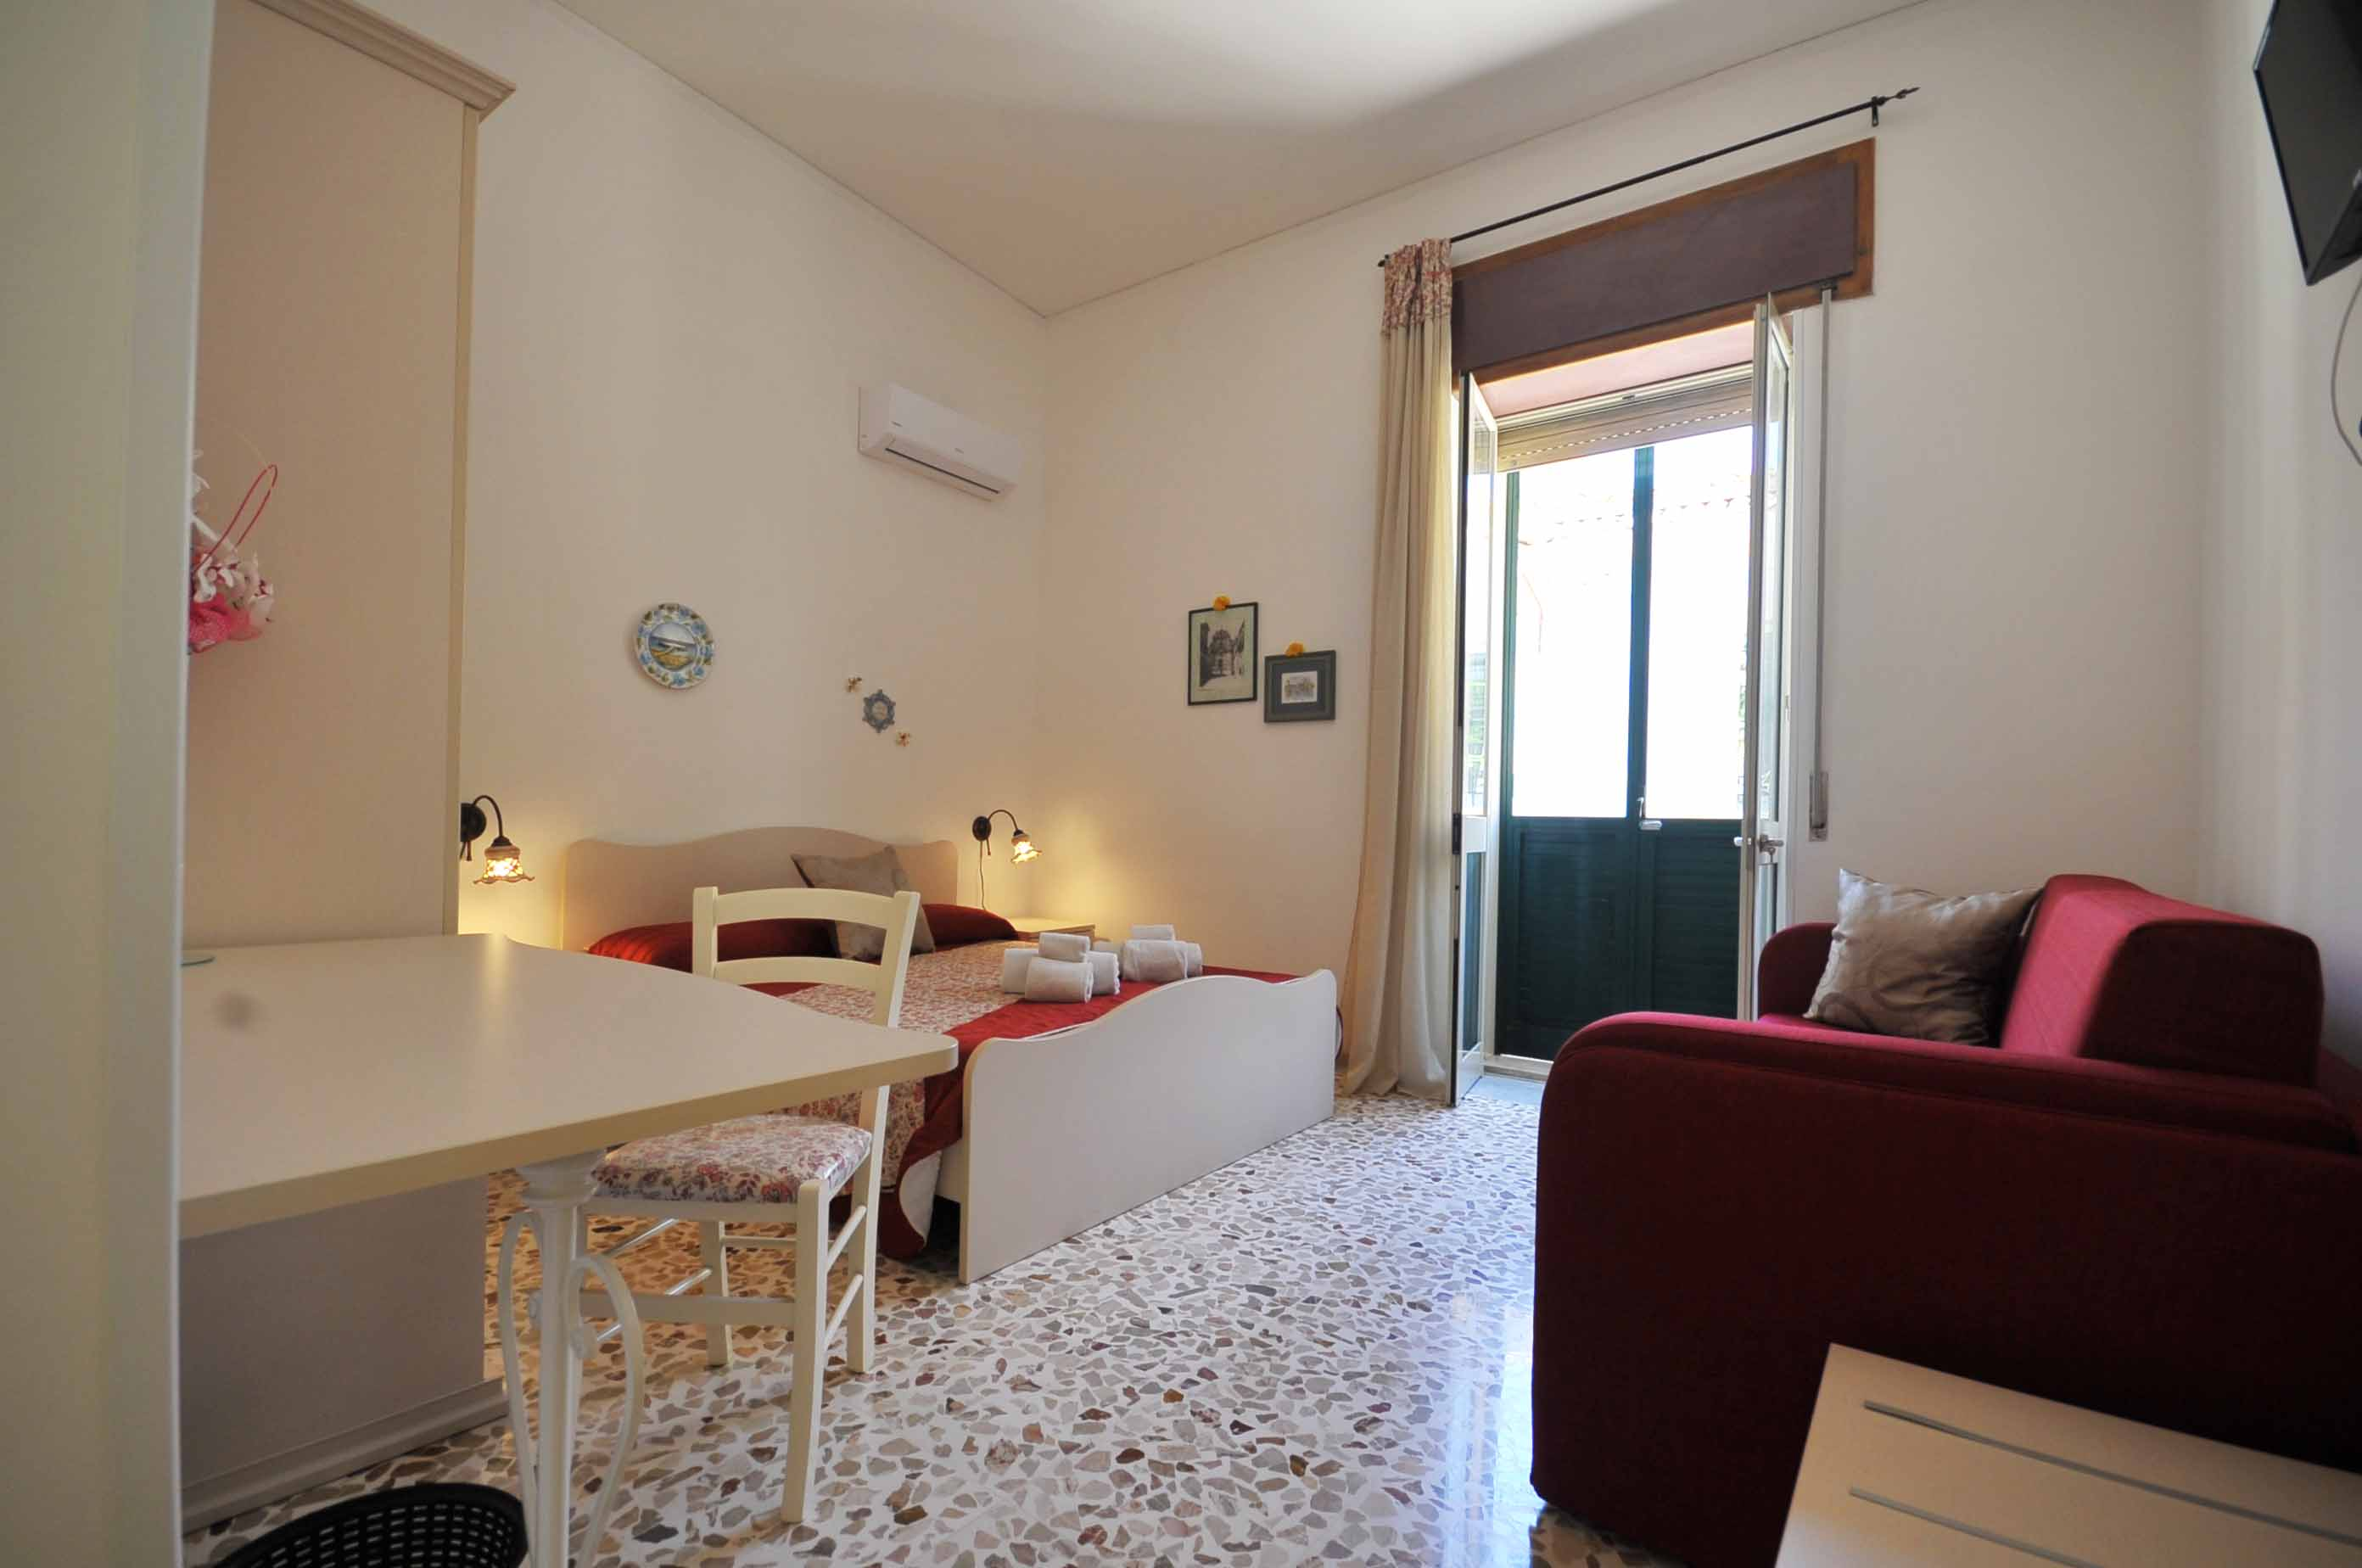 Athena_camera_familiare_B&B_Avola_siracusa_bed_and_breakfast_2